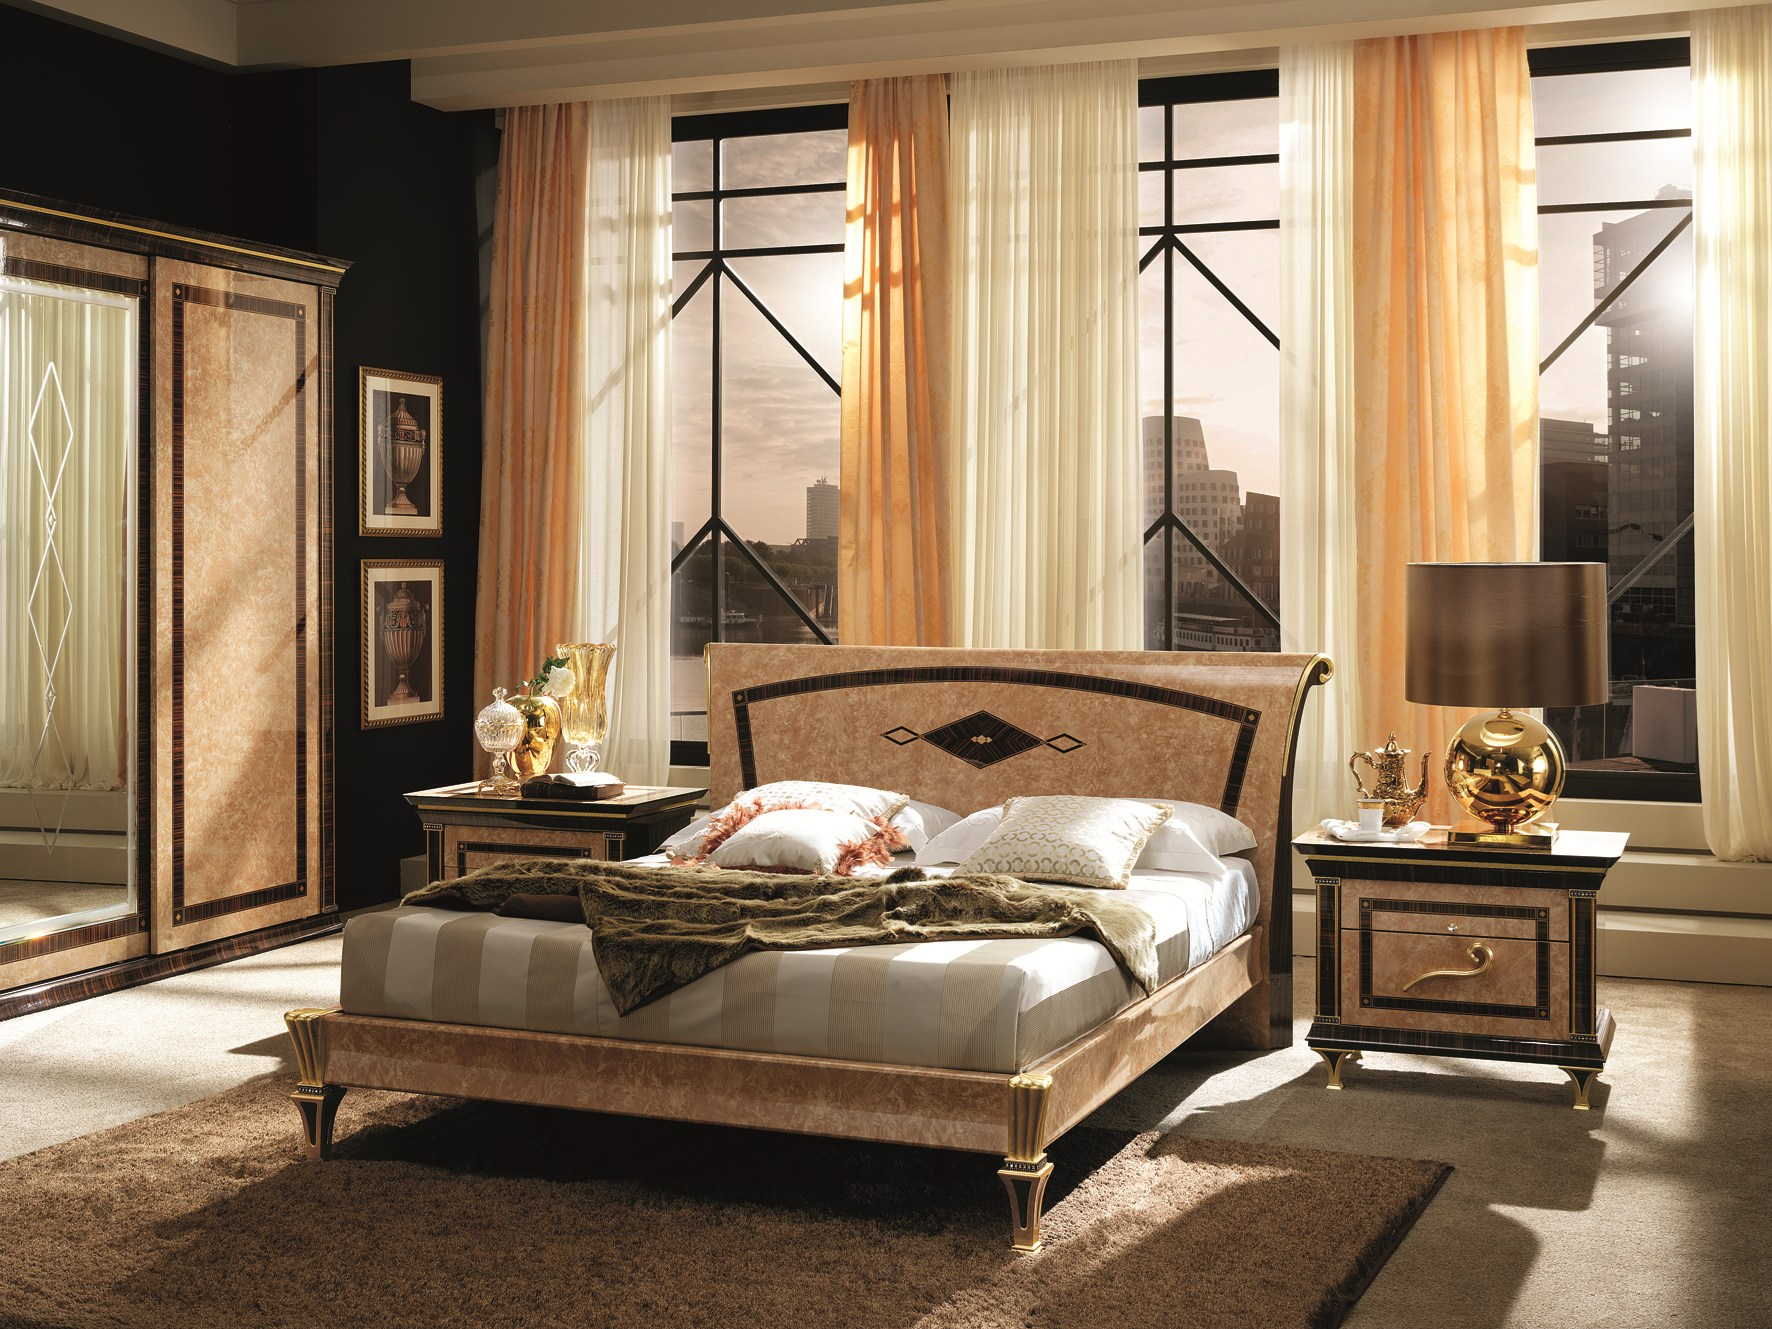 rossini bett by arredoclassic. Black Bedroom Furniture Sets. Home Design Ideas